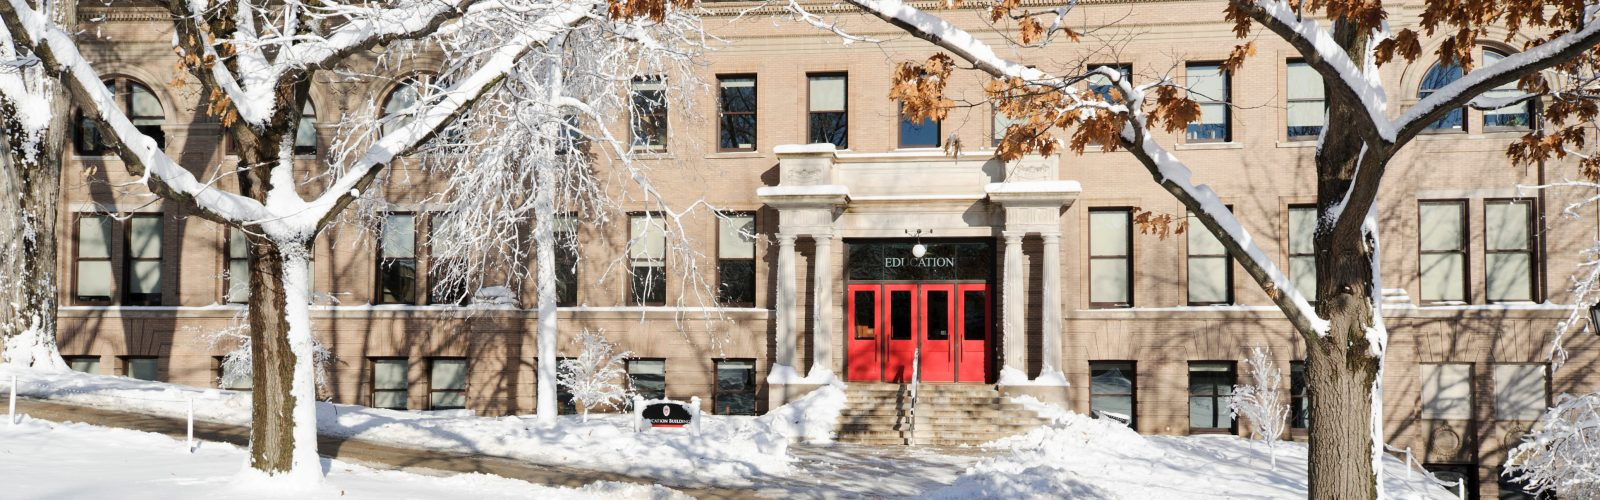 Education Building covered in snow